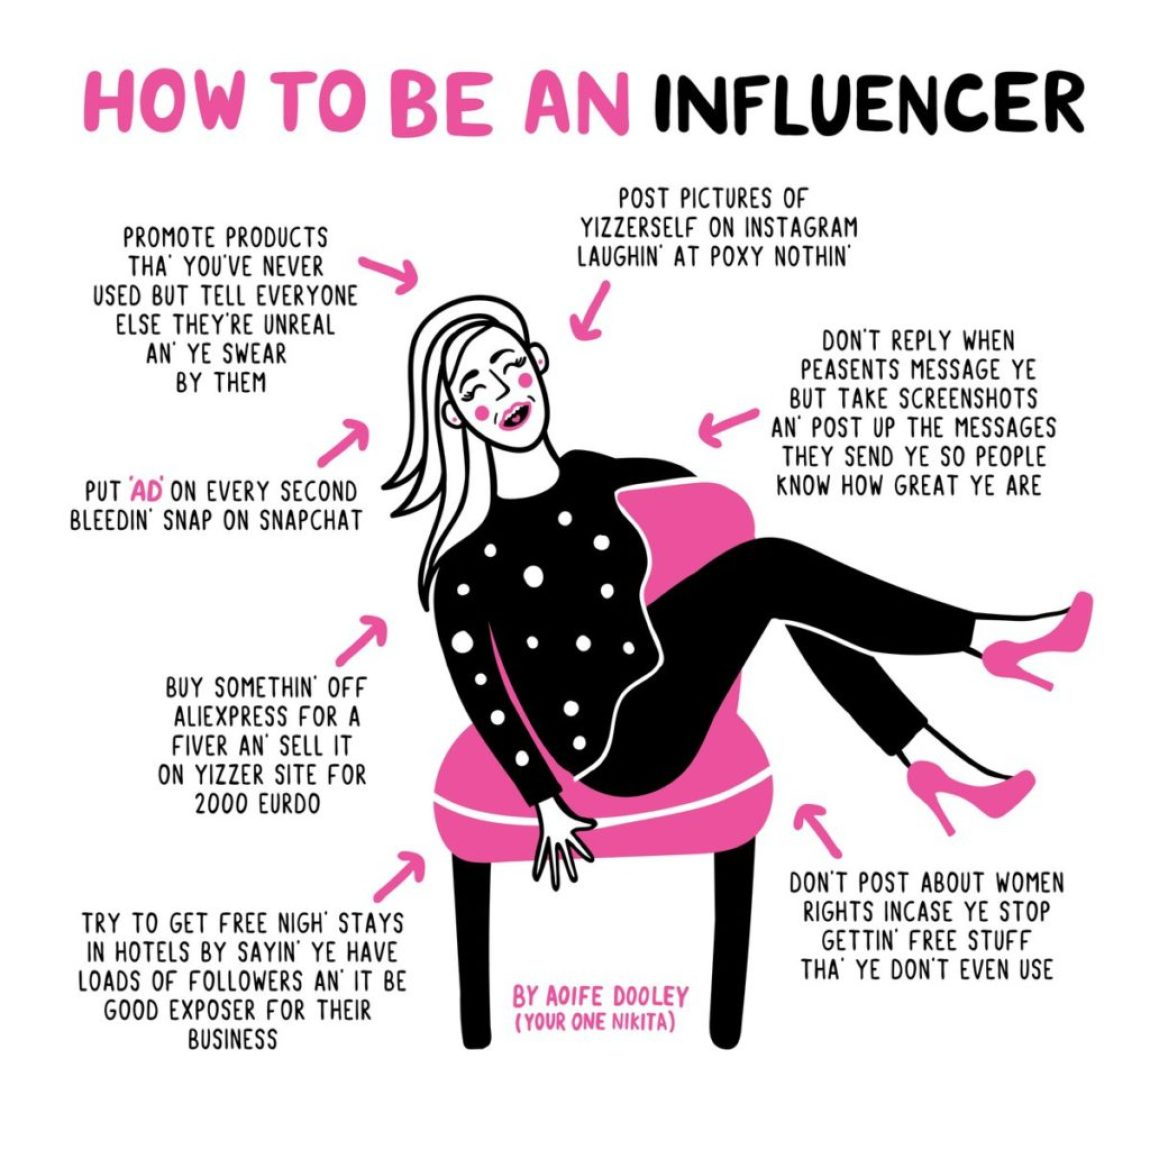 World Famous Phenomenon Becoming an Influencer